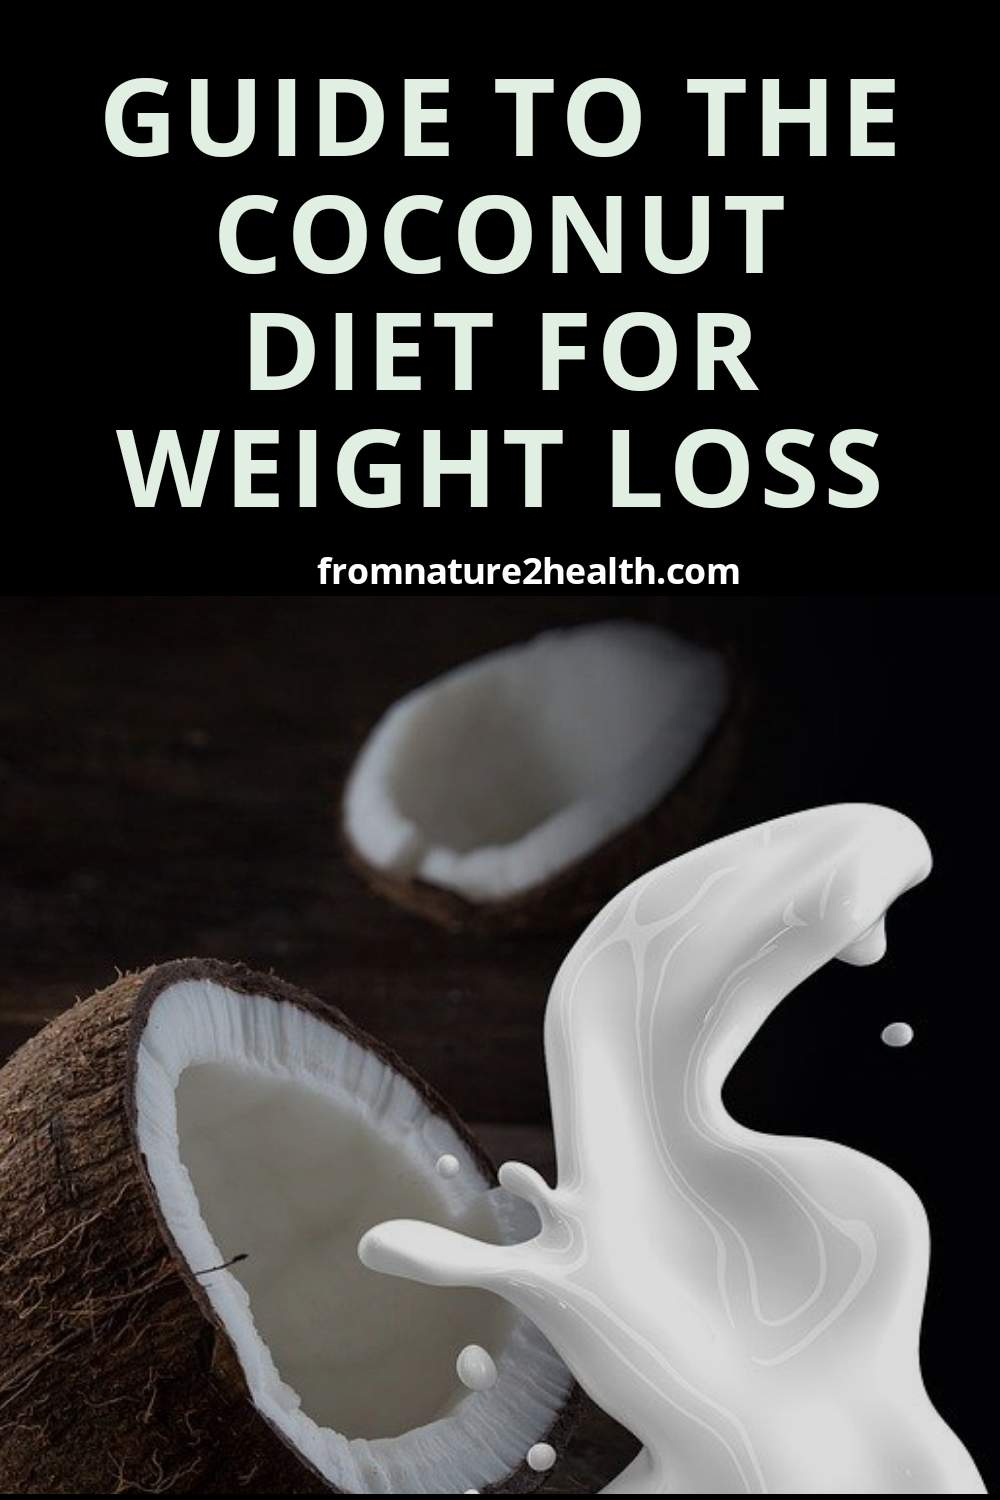 Guide to the Coconut Diet for Weight Loss